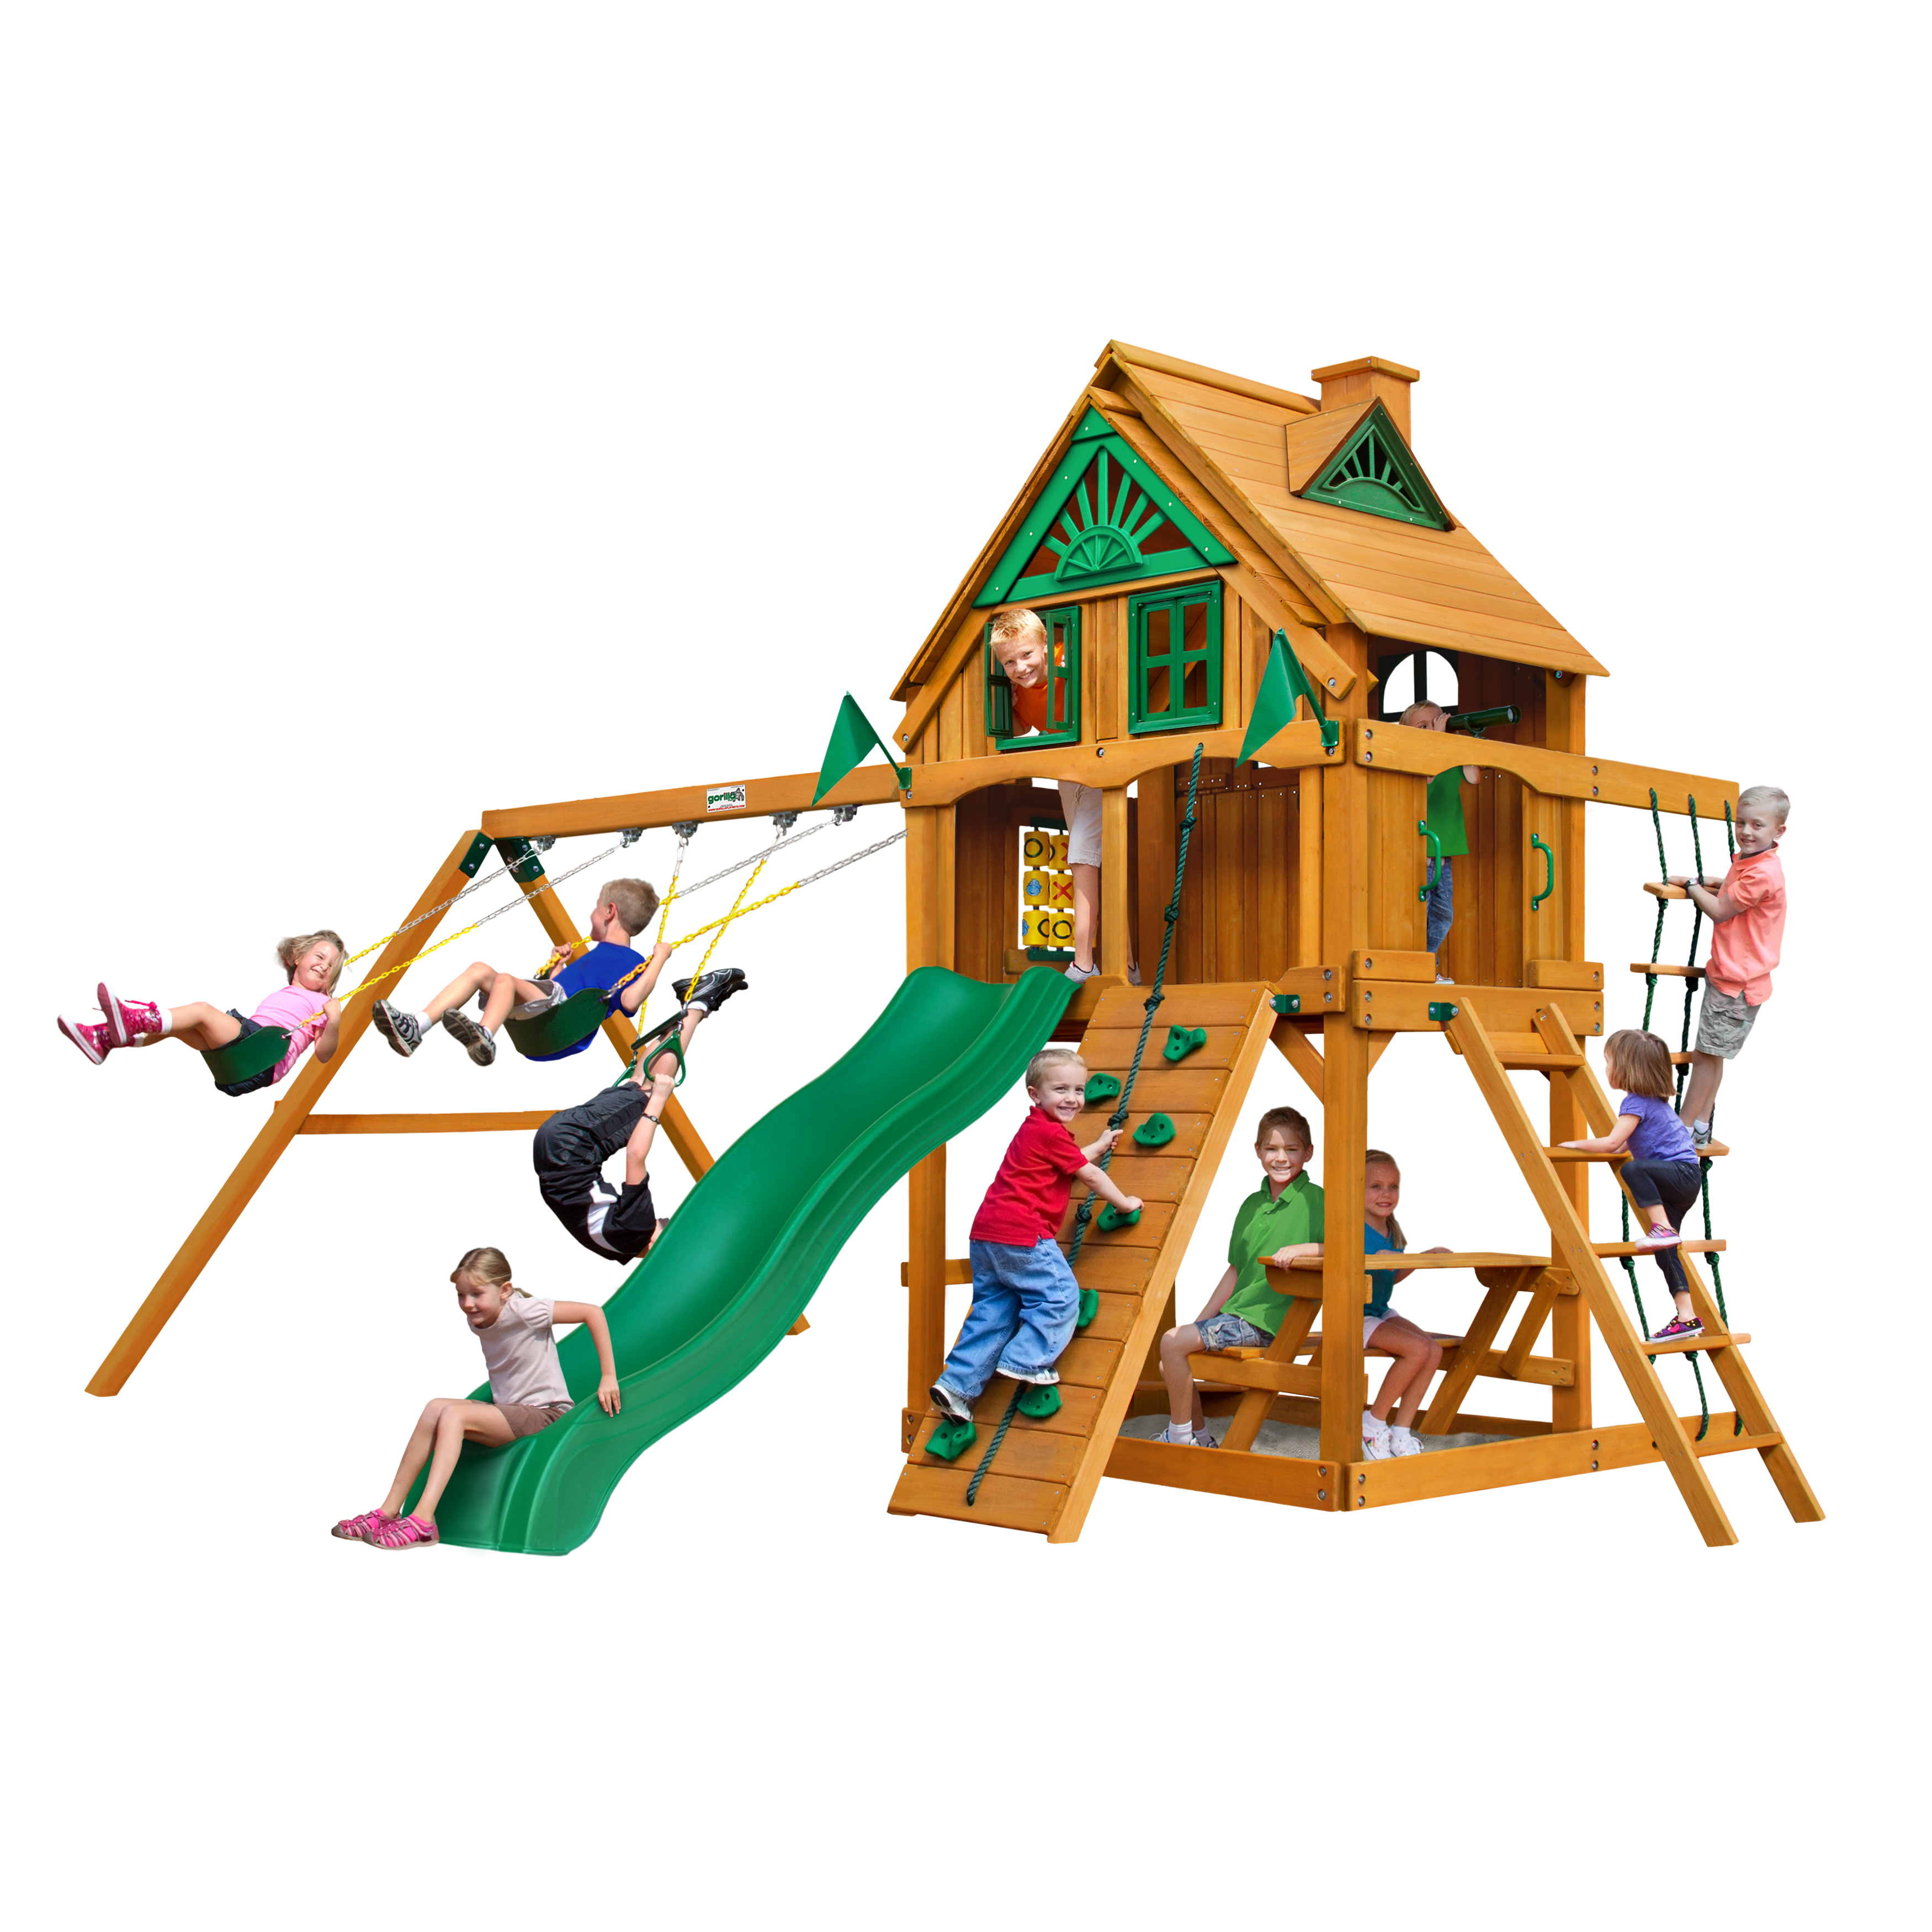 Gorilla Playsets Chateau Treehouse Cedar Swing Set with Fort Add-On & Natural Cedar Posts